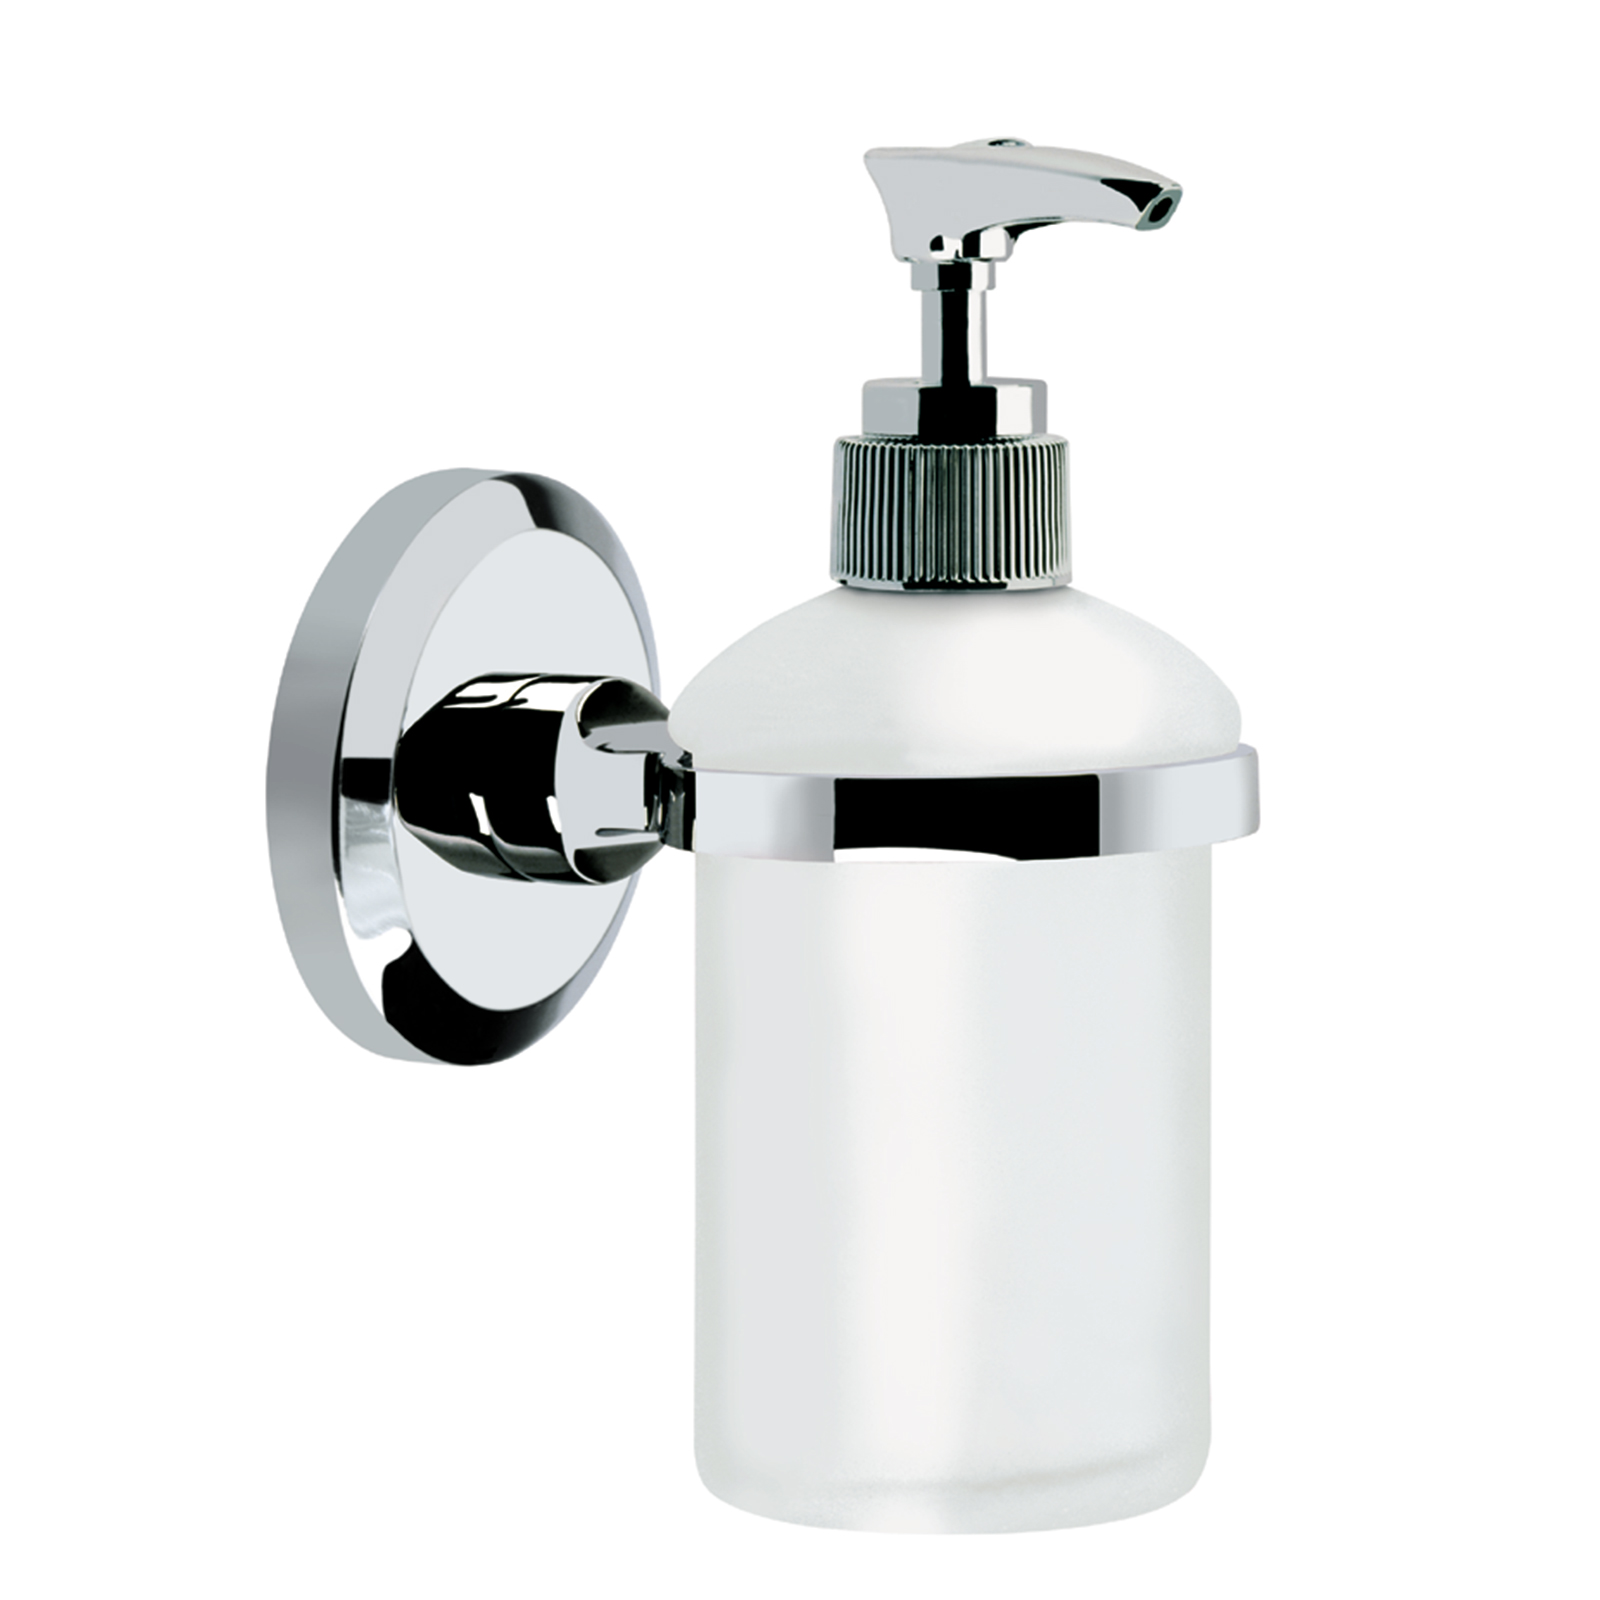 Bristan Solo Wall Mounted Frosted Glass Soap Dispenser £35 00 at